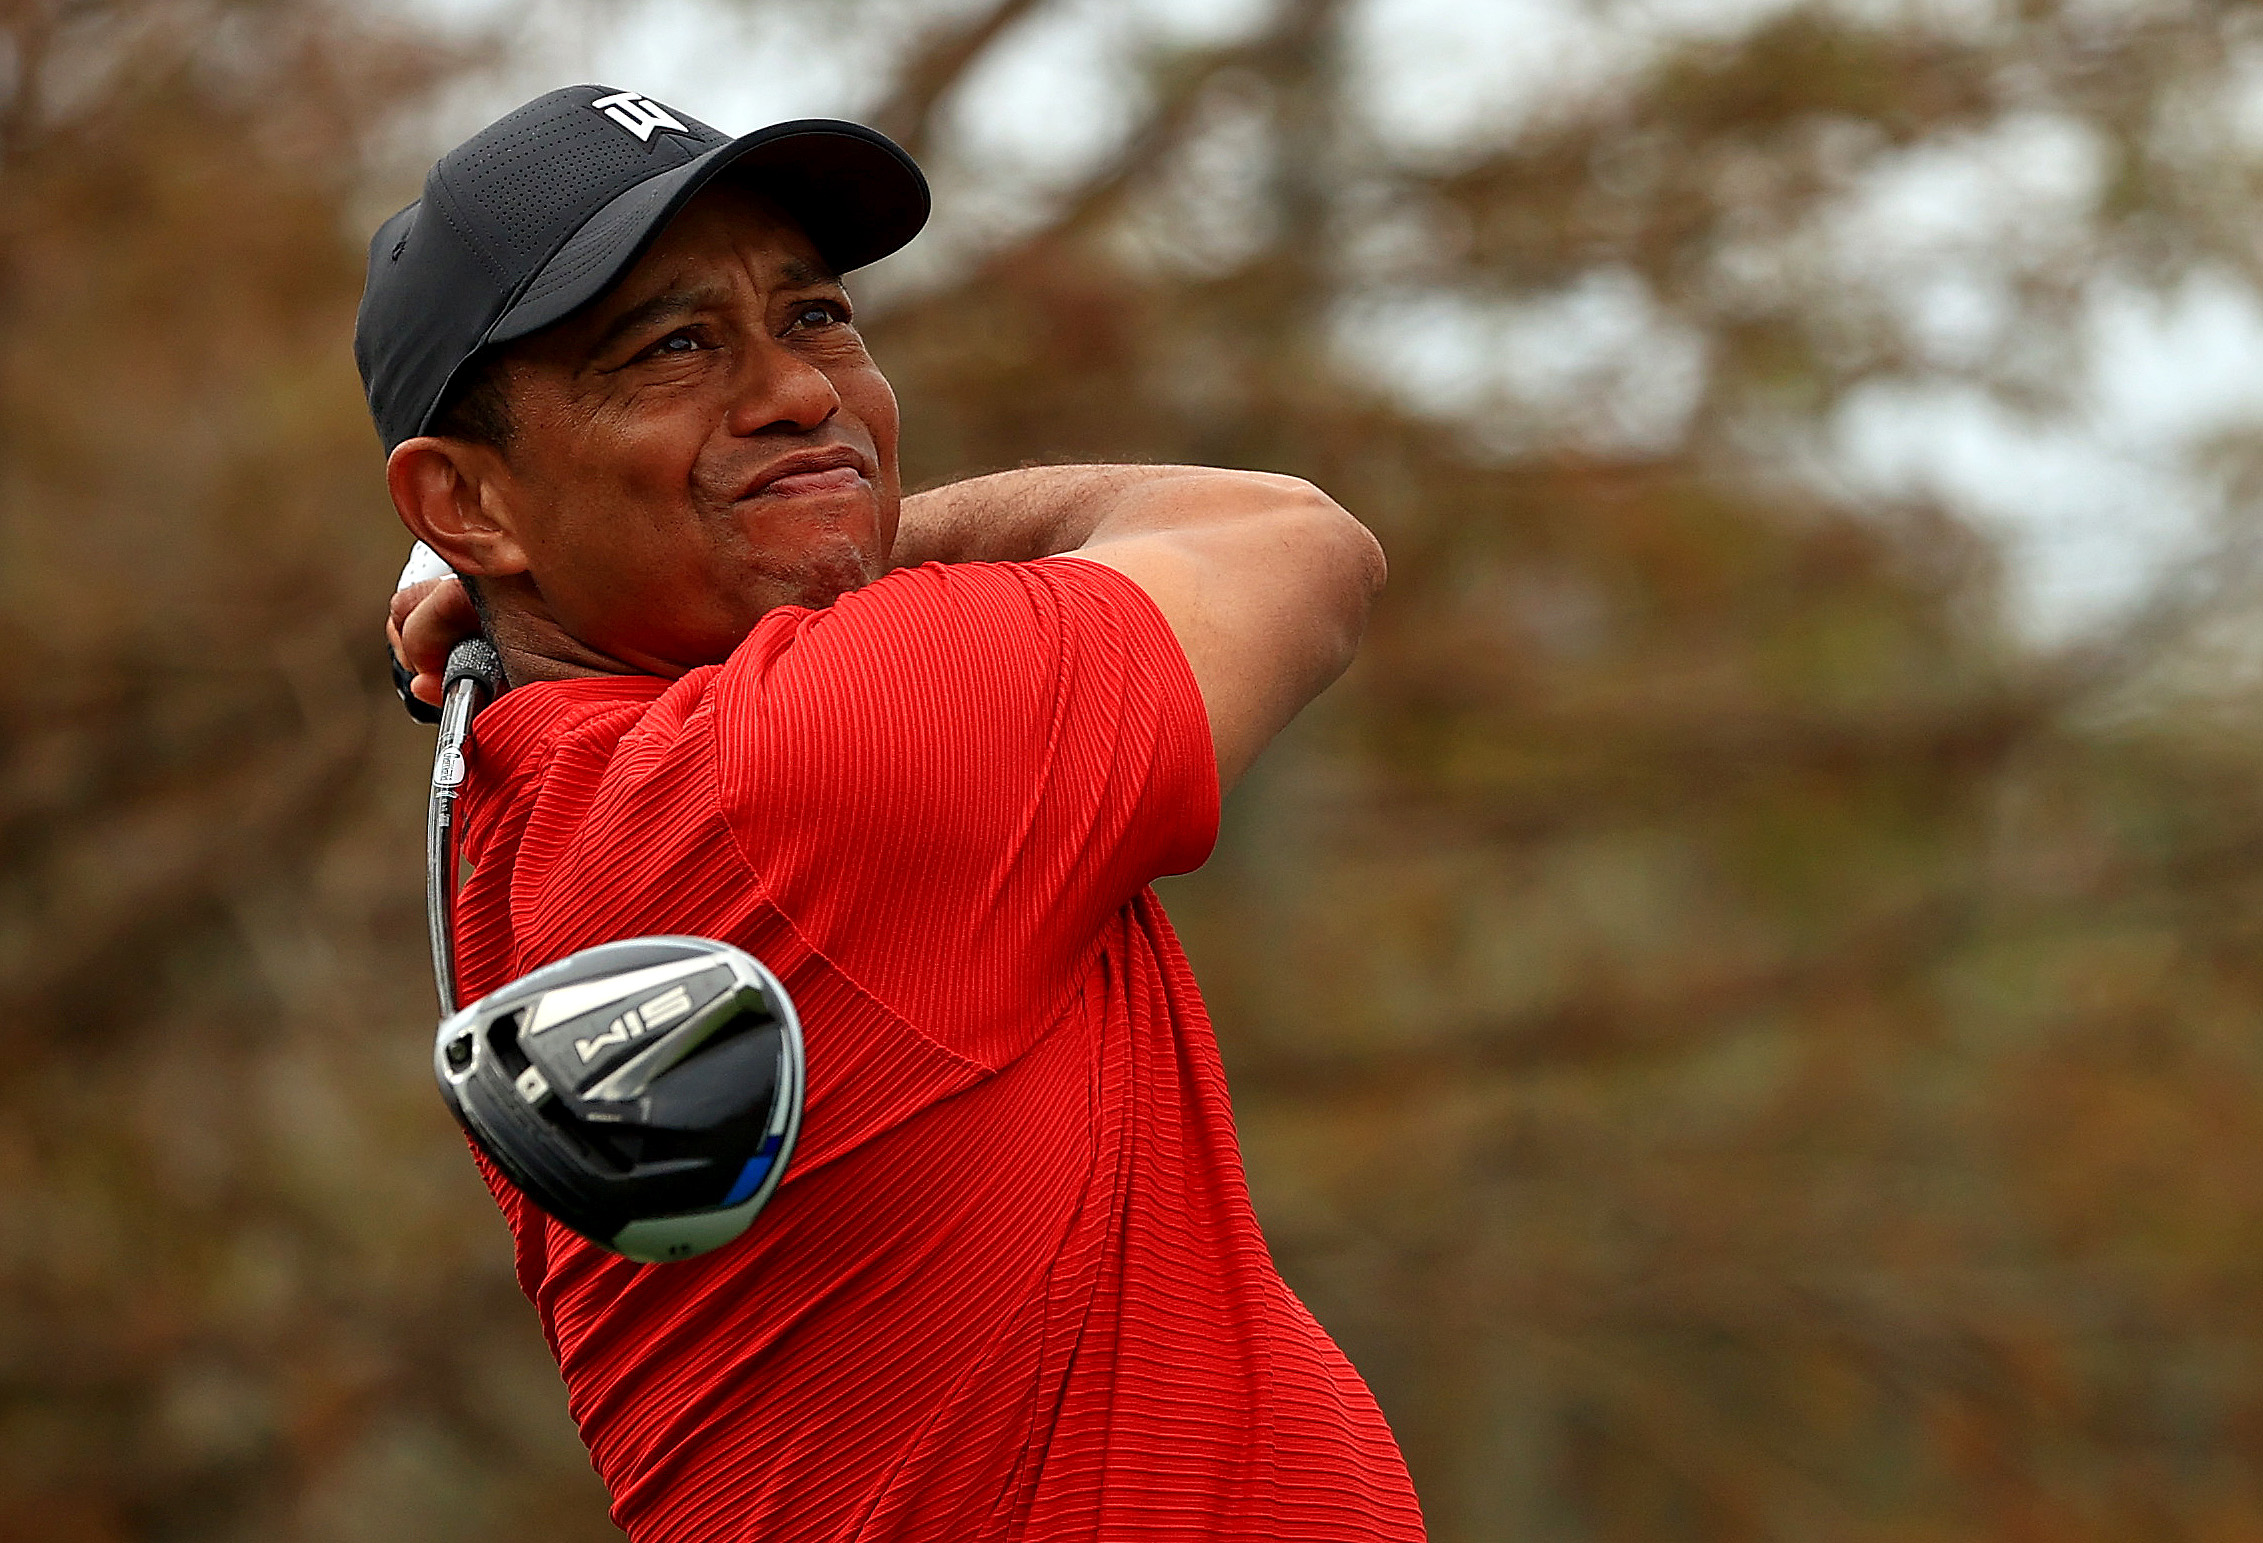 'He's not going to like this sh*t at all': Documentary shines new light on Tiger Woods' life